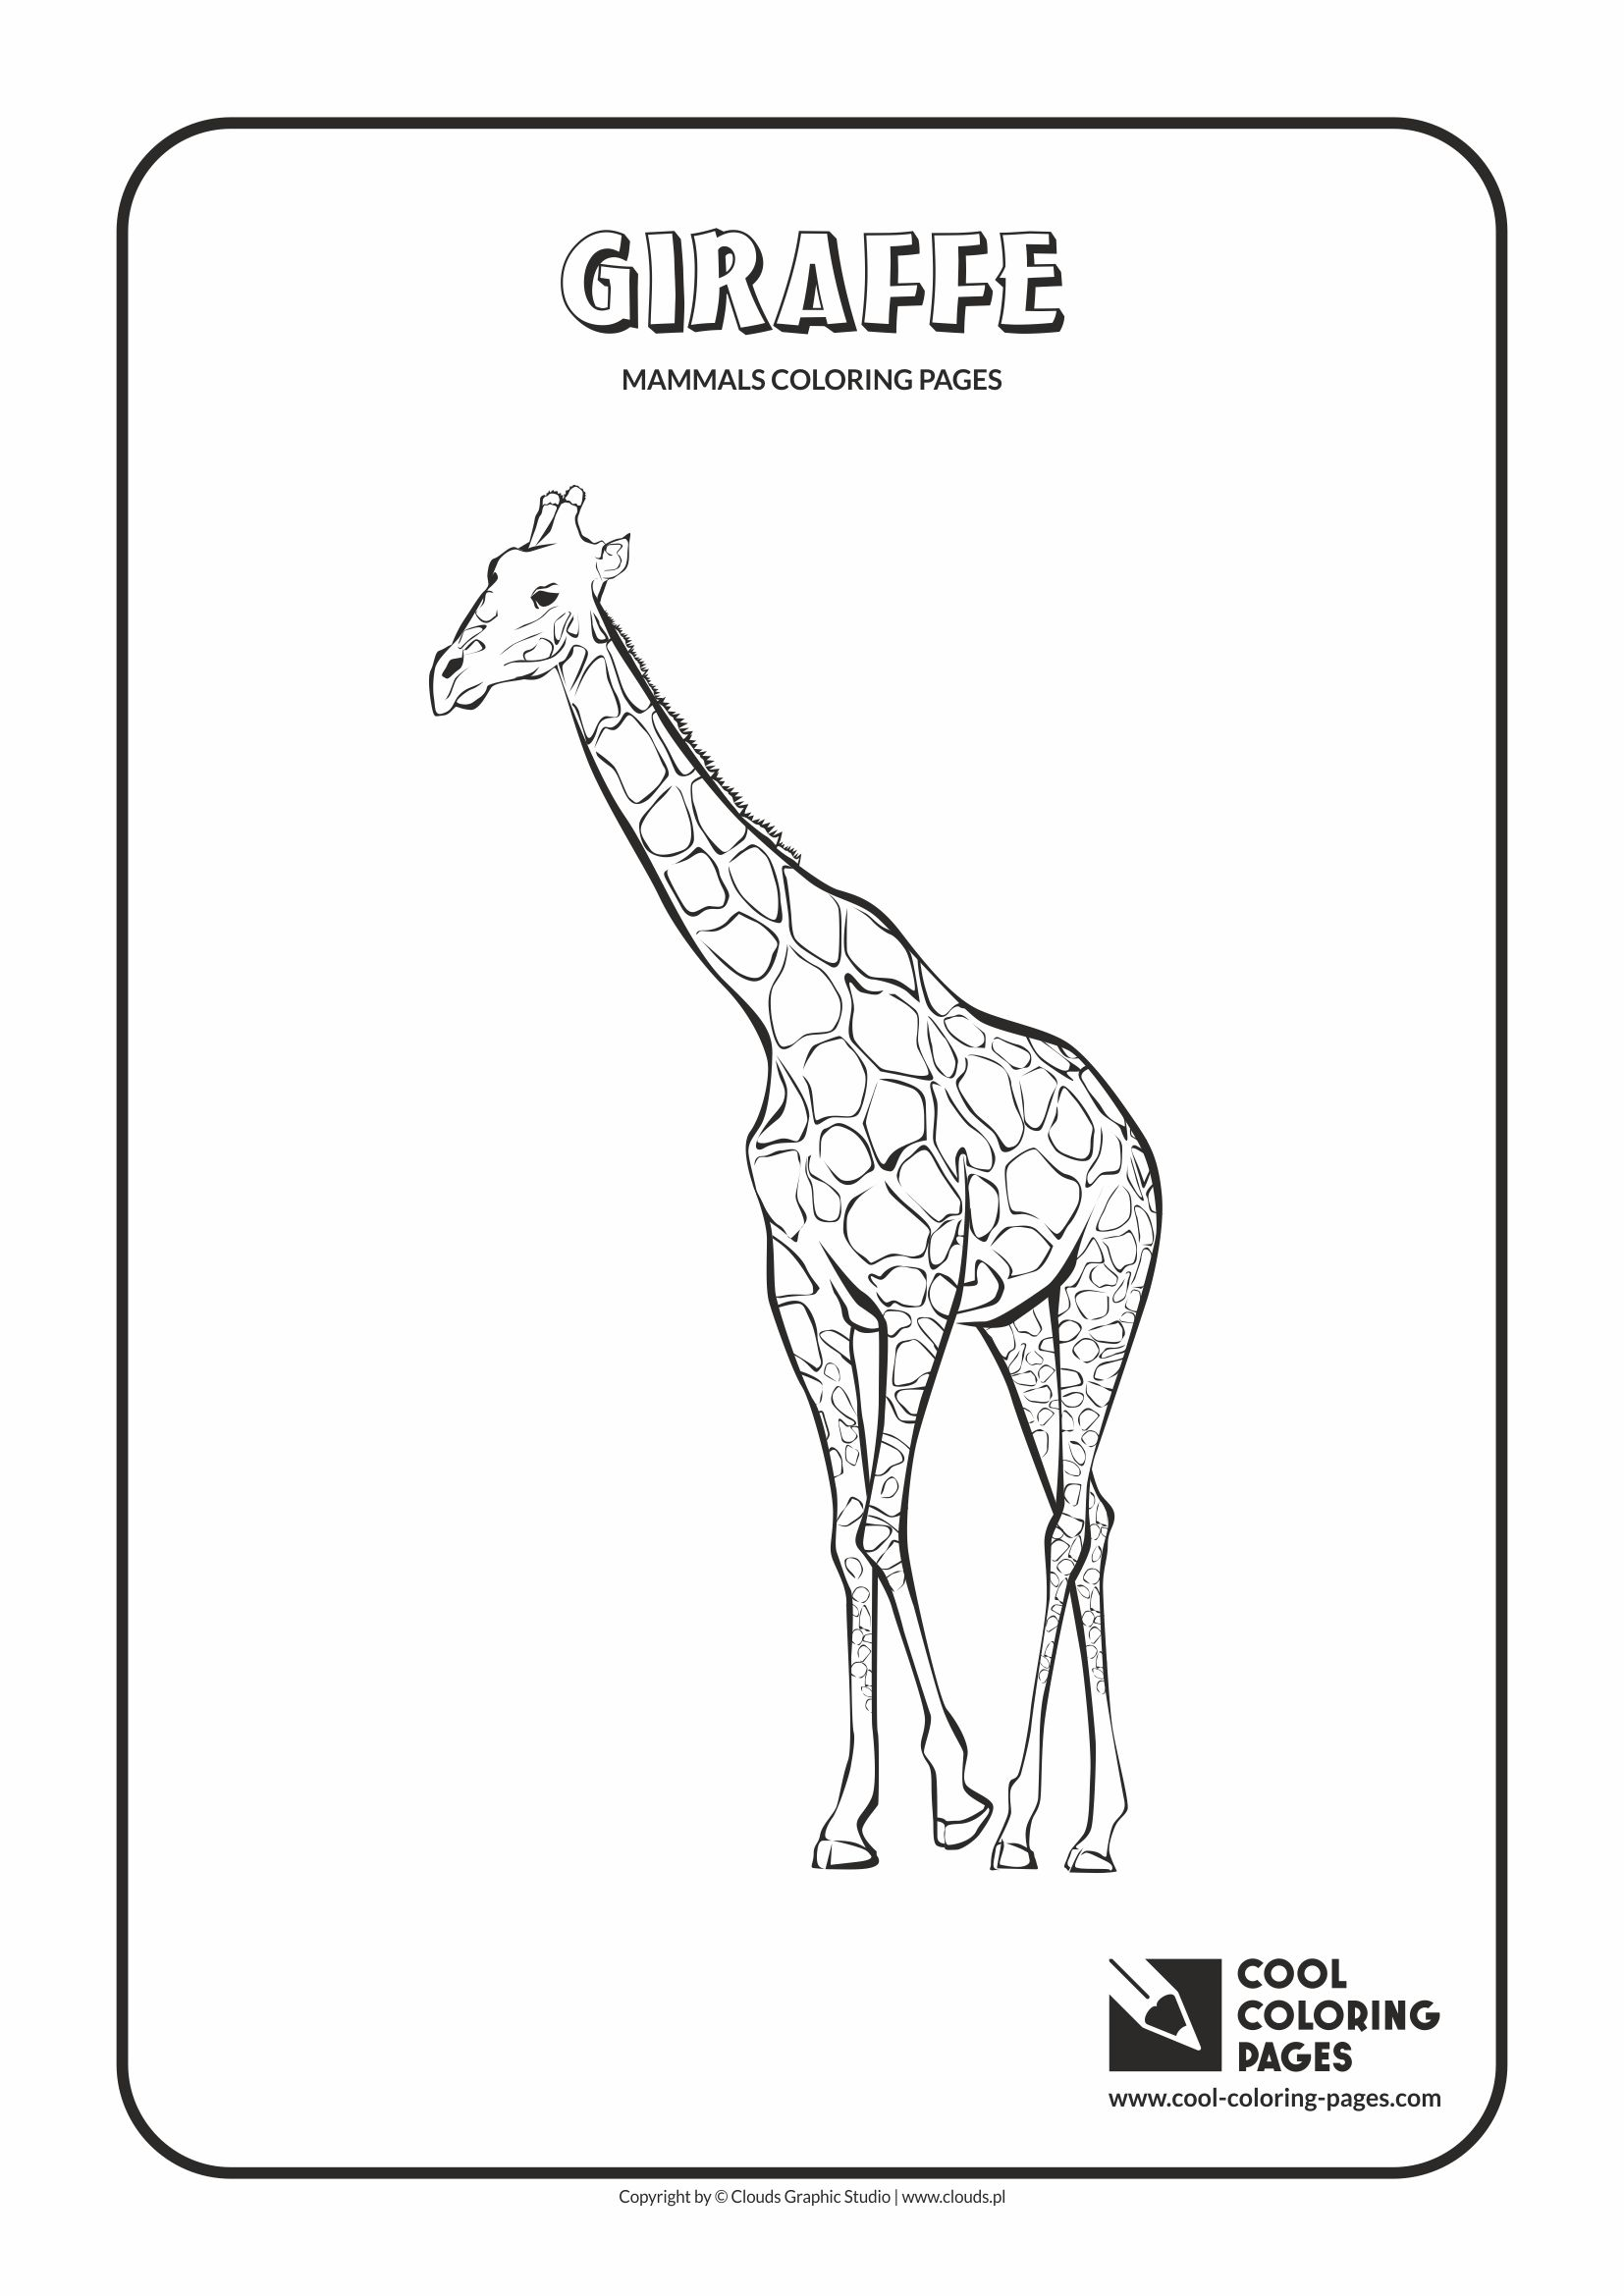 giraffe coloring page cool coloring pages